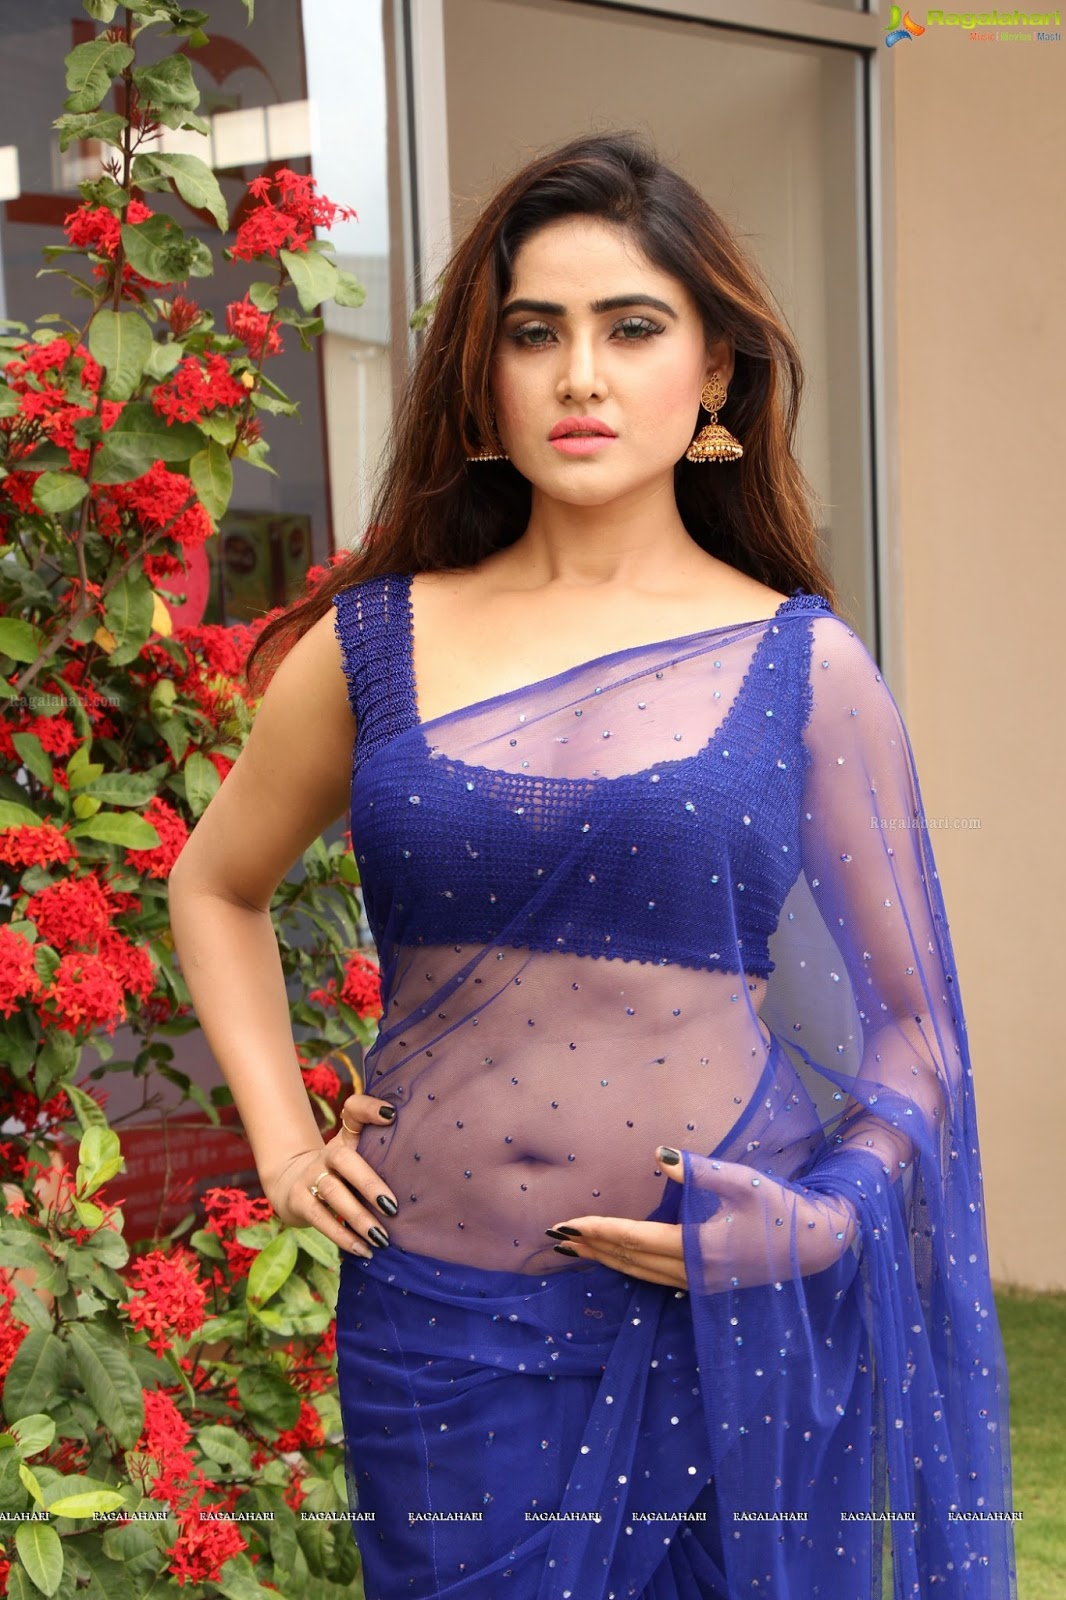 Telugu Actress Hot Navel In Transparent Saree Pictures -9543